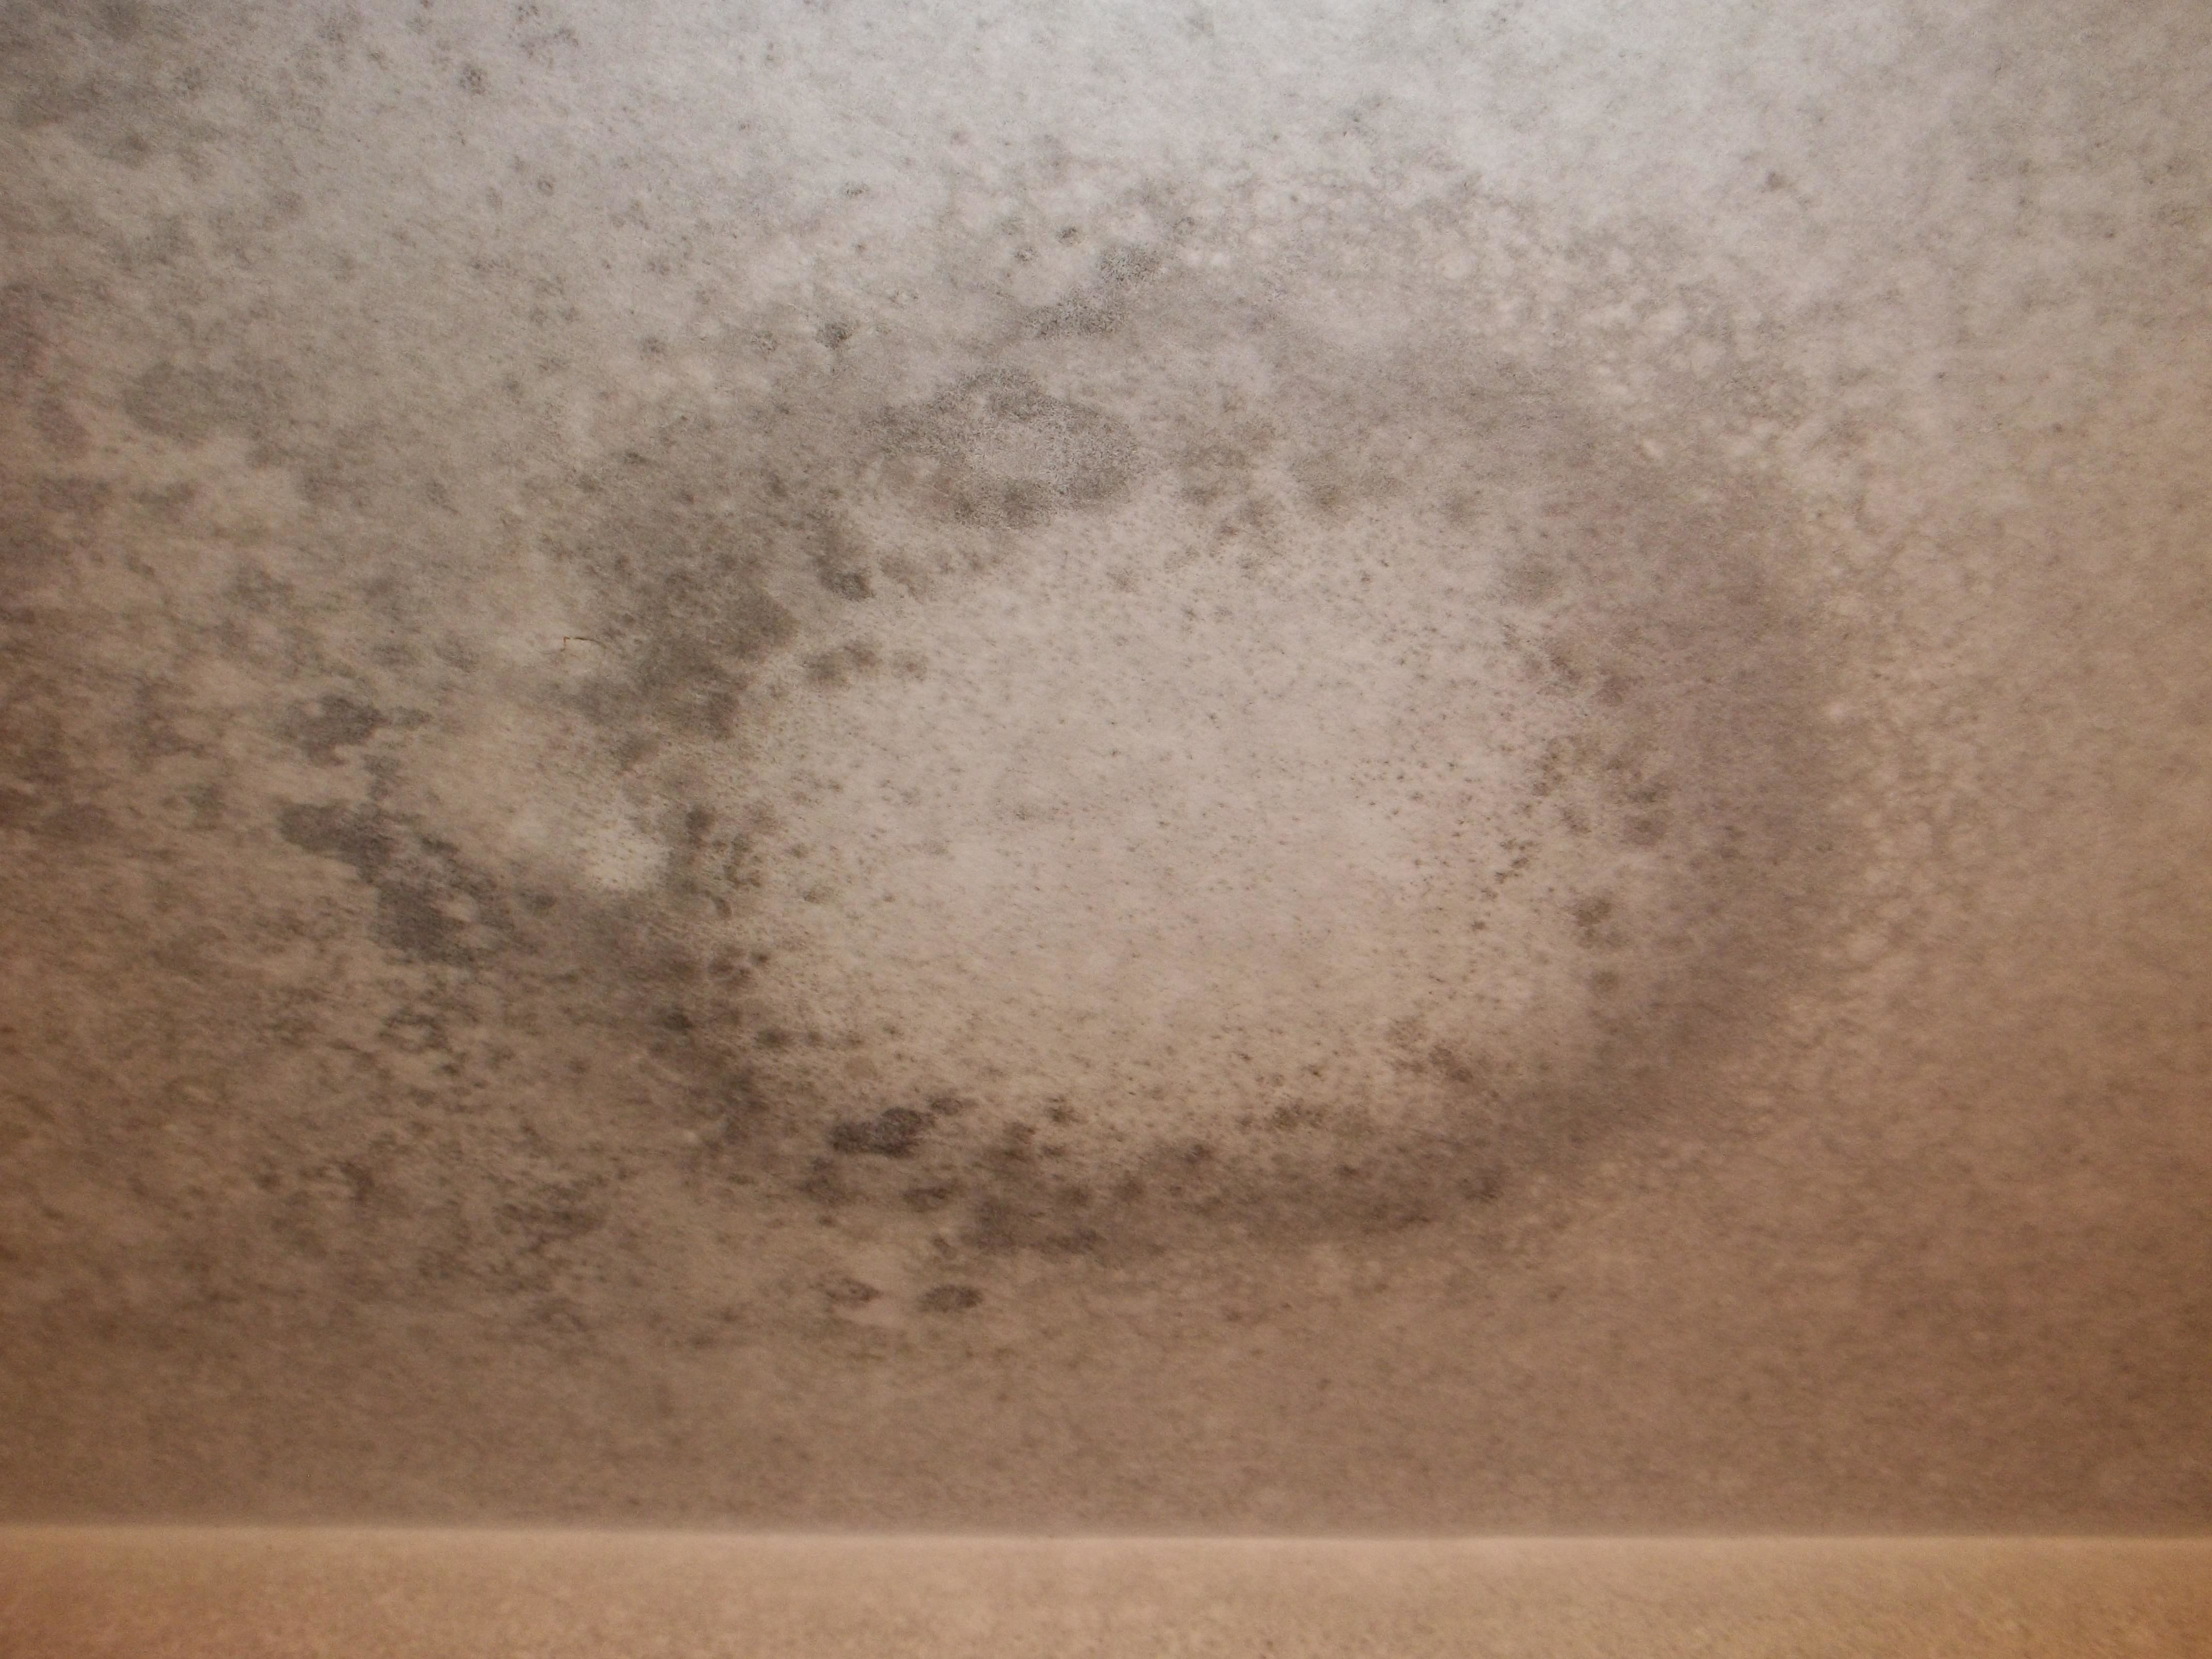 Anderson Restoration & Emergency Services - Water Damage & Mold Remediation image 6